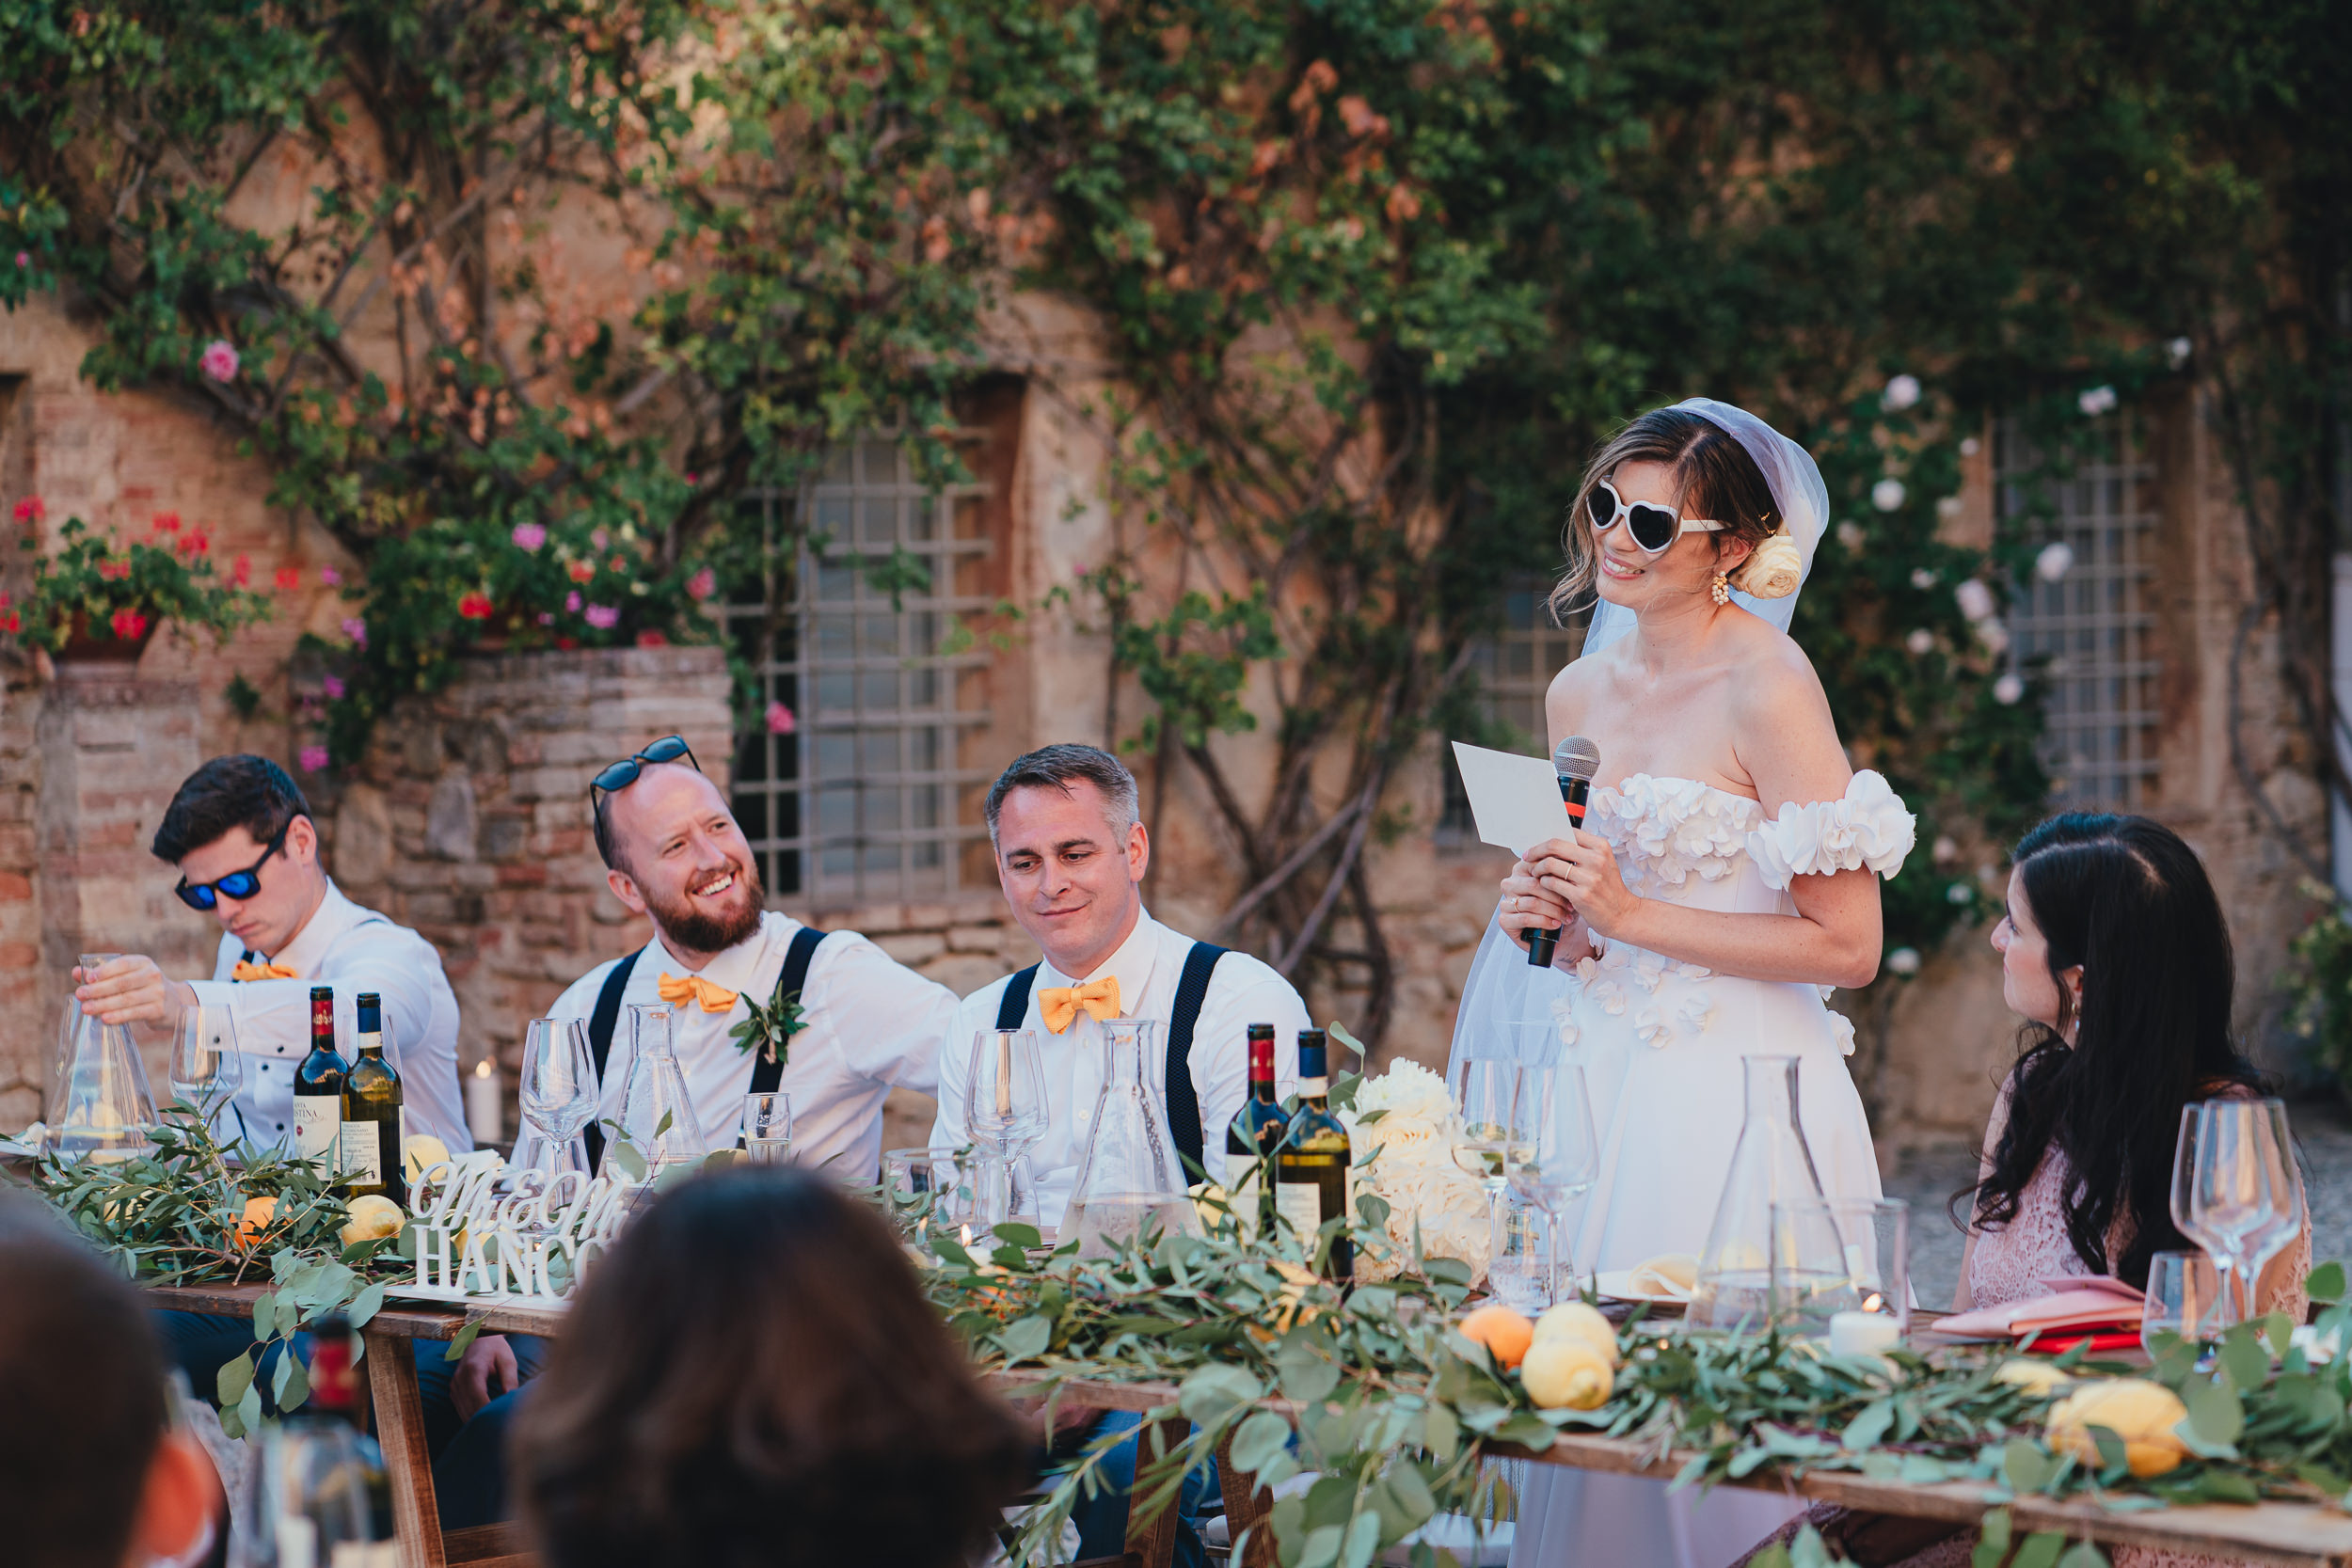 Tuscan Villa Wedding - The Bride gives a speech